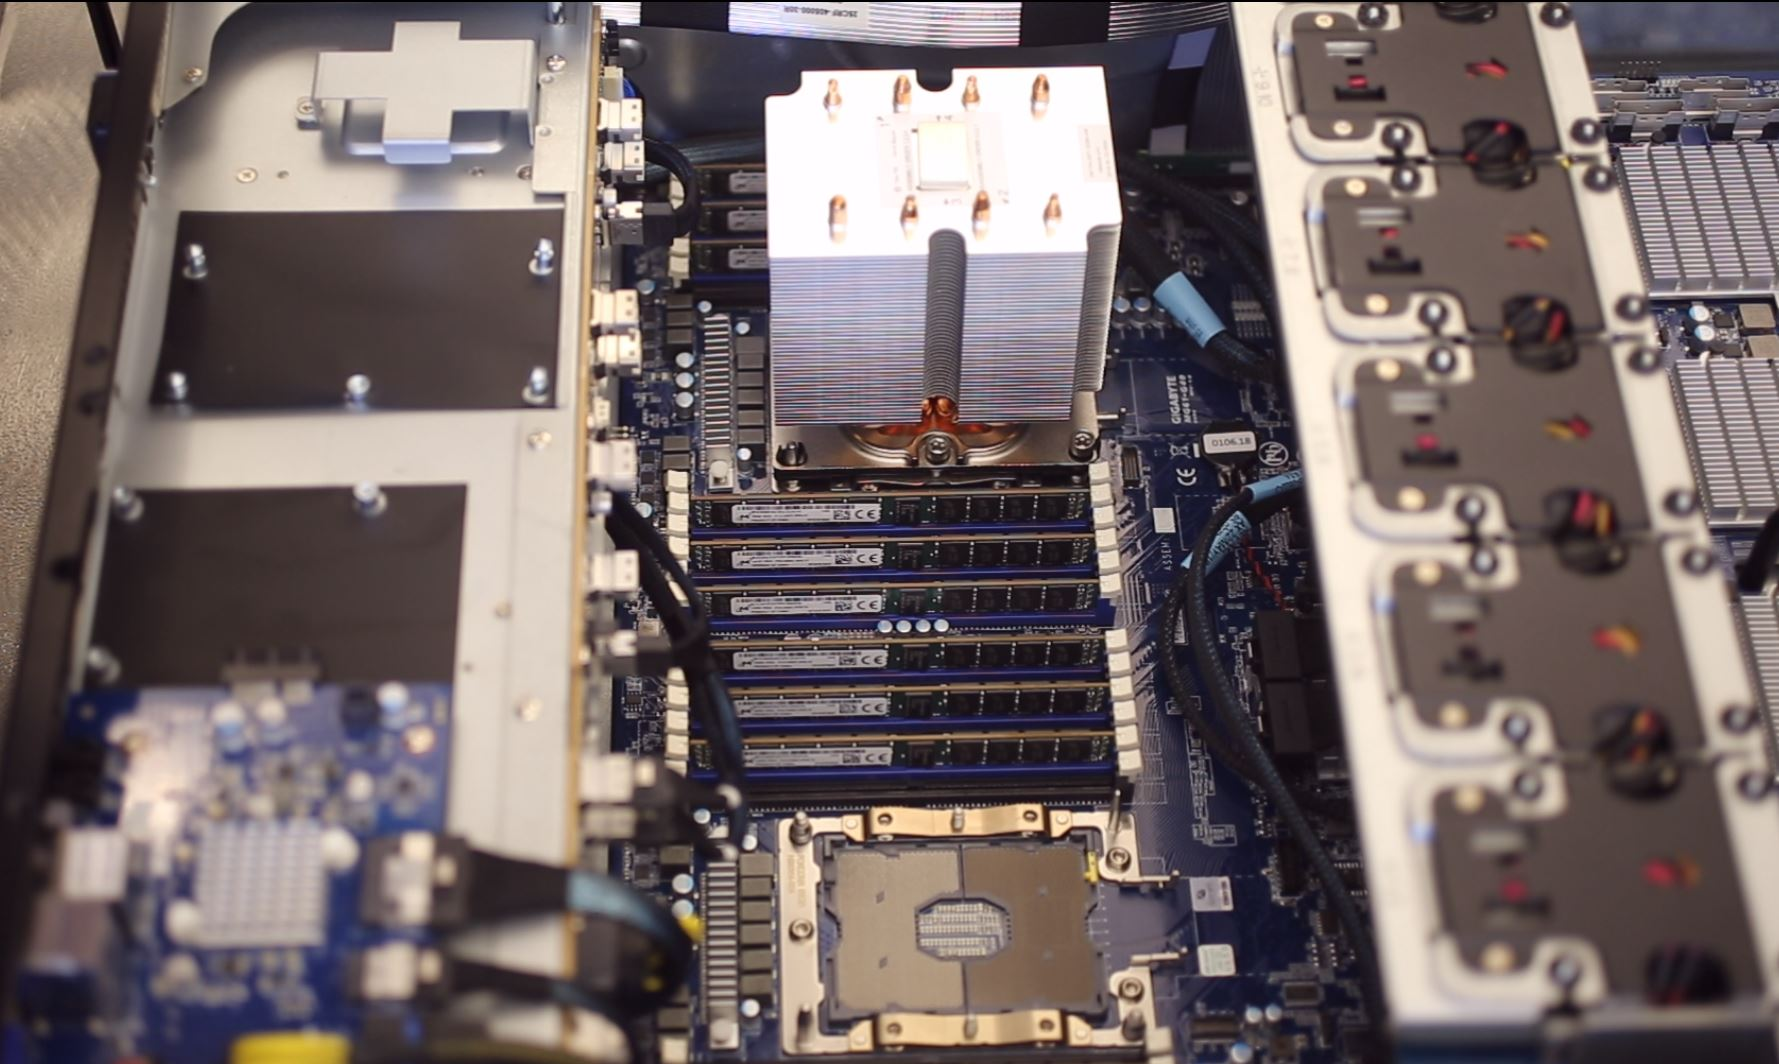 Gigabyte G481 S80 Intel Xeon Scalable And RAM Installation